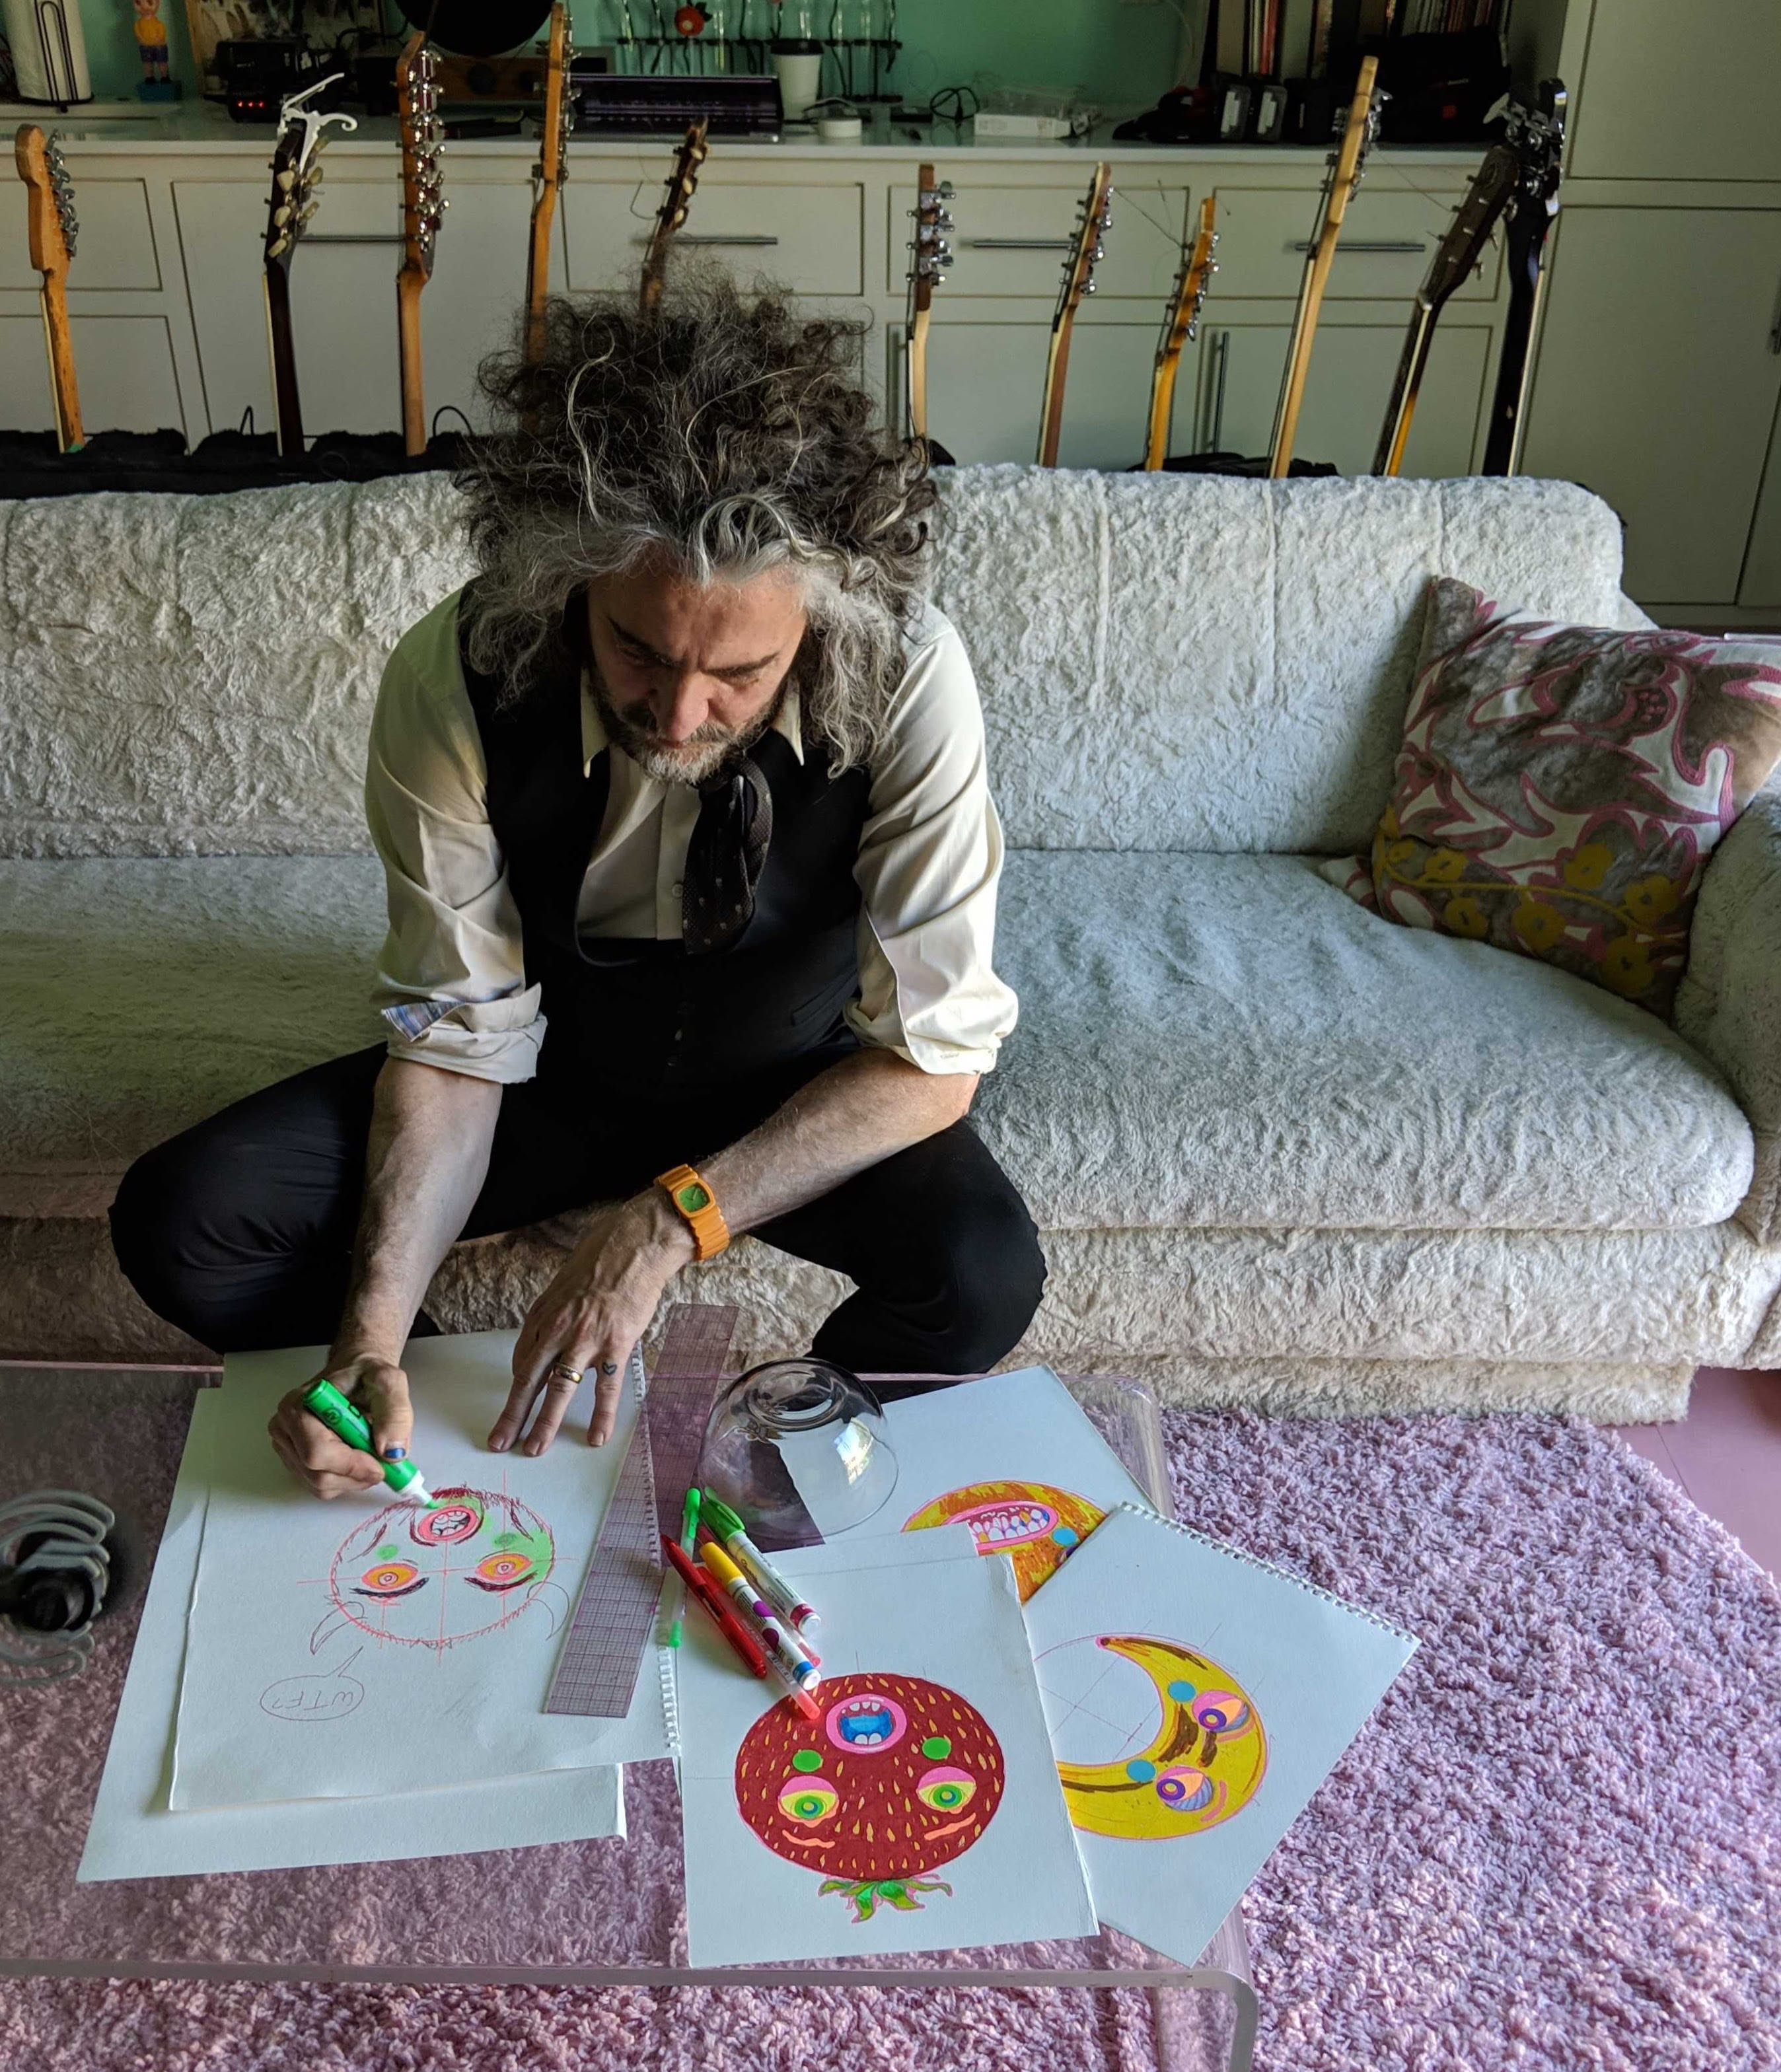 Wayne Coyne (The Flaming Lips) sketches designs for the inflatable fruit.